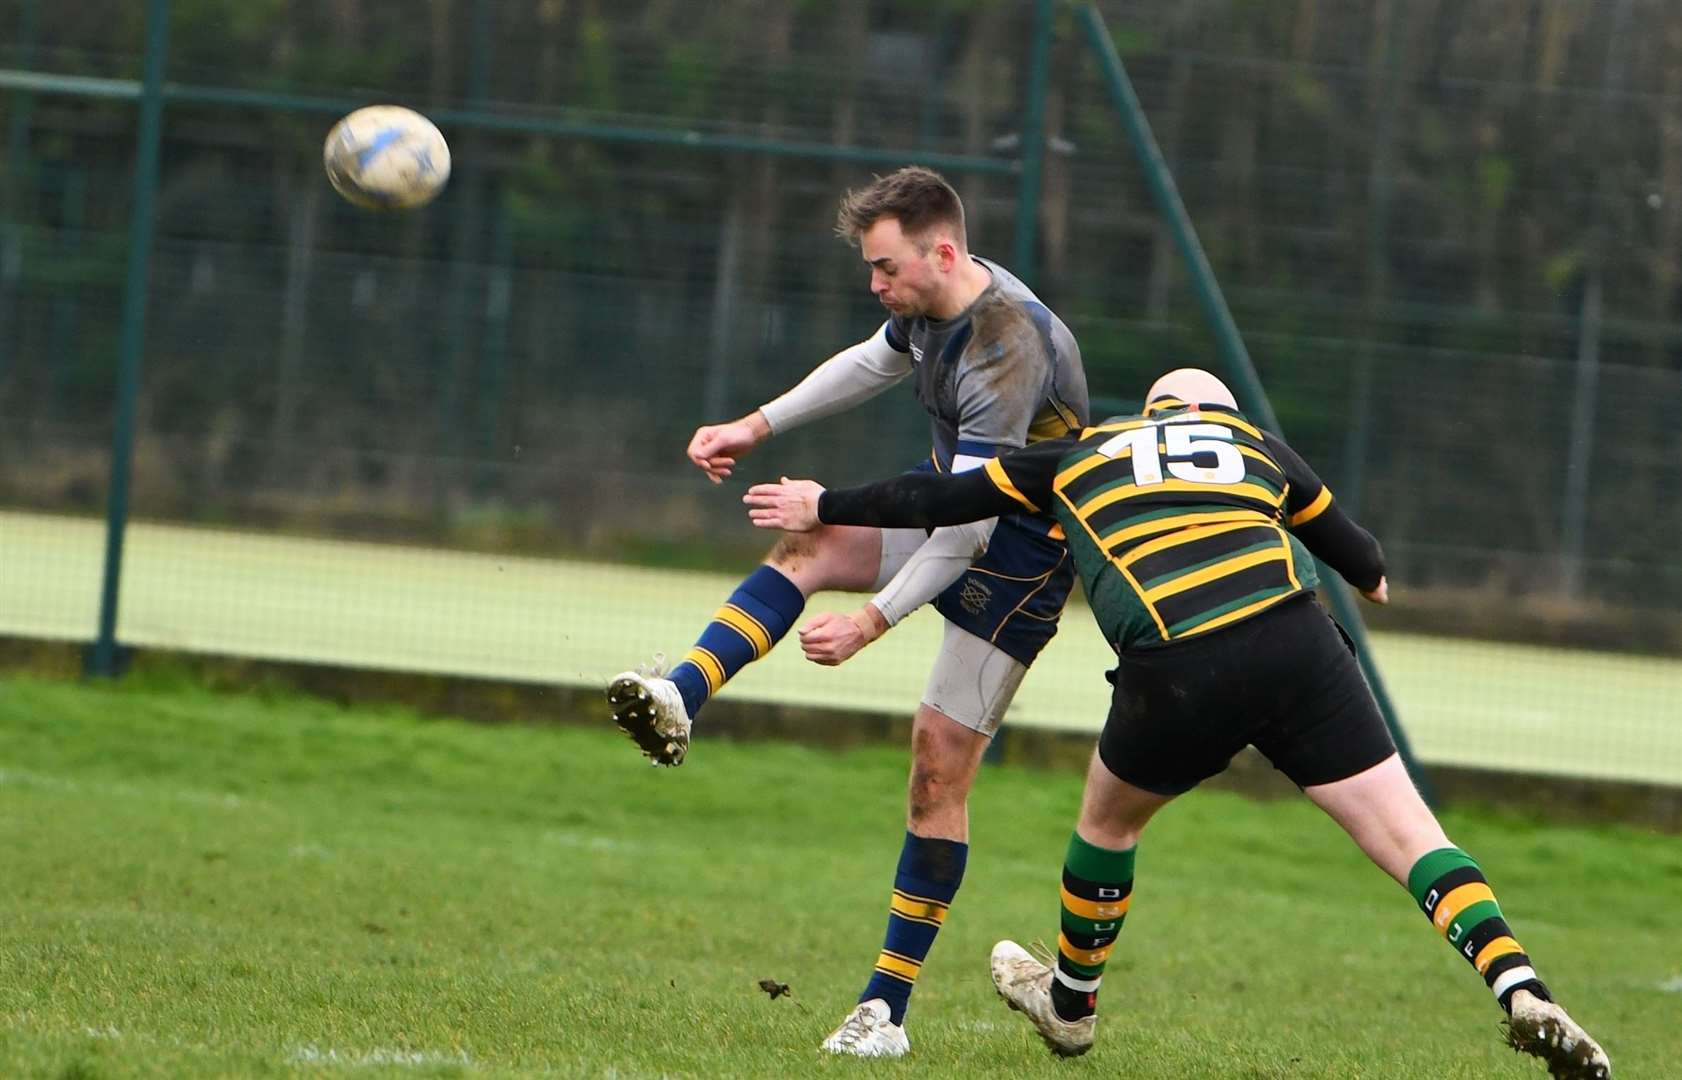 Action from Deepings' Vets against Bourne 2nd XVs at Linchfield Road.Photo by Alan Hancock. (30030671)